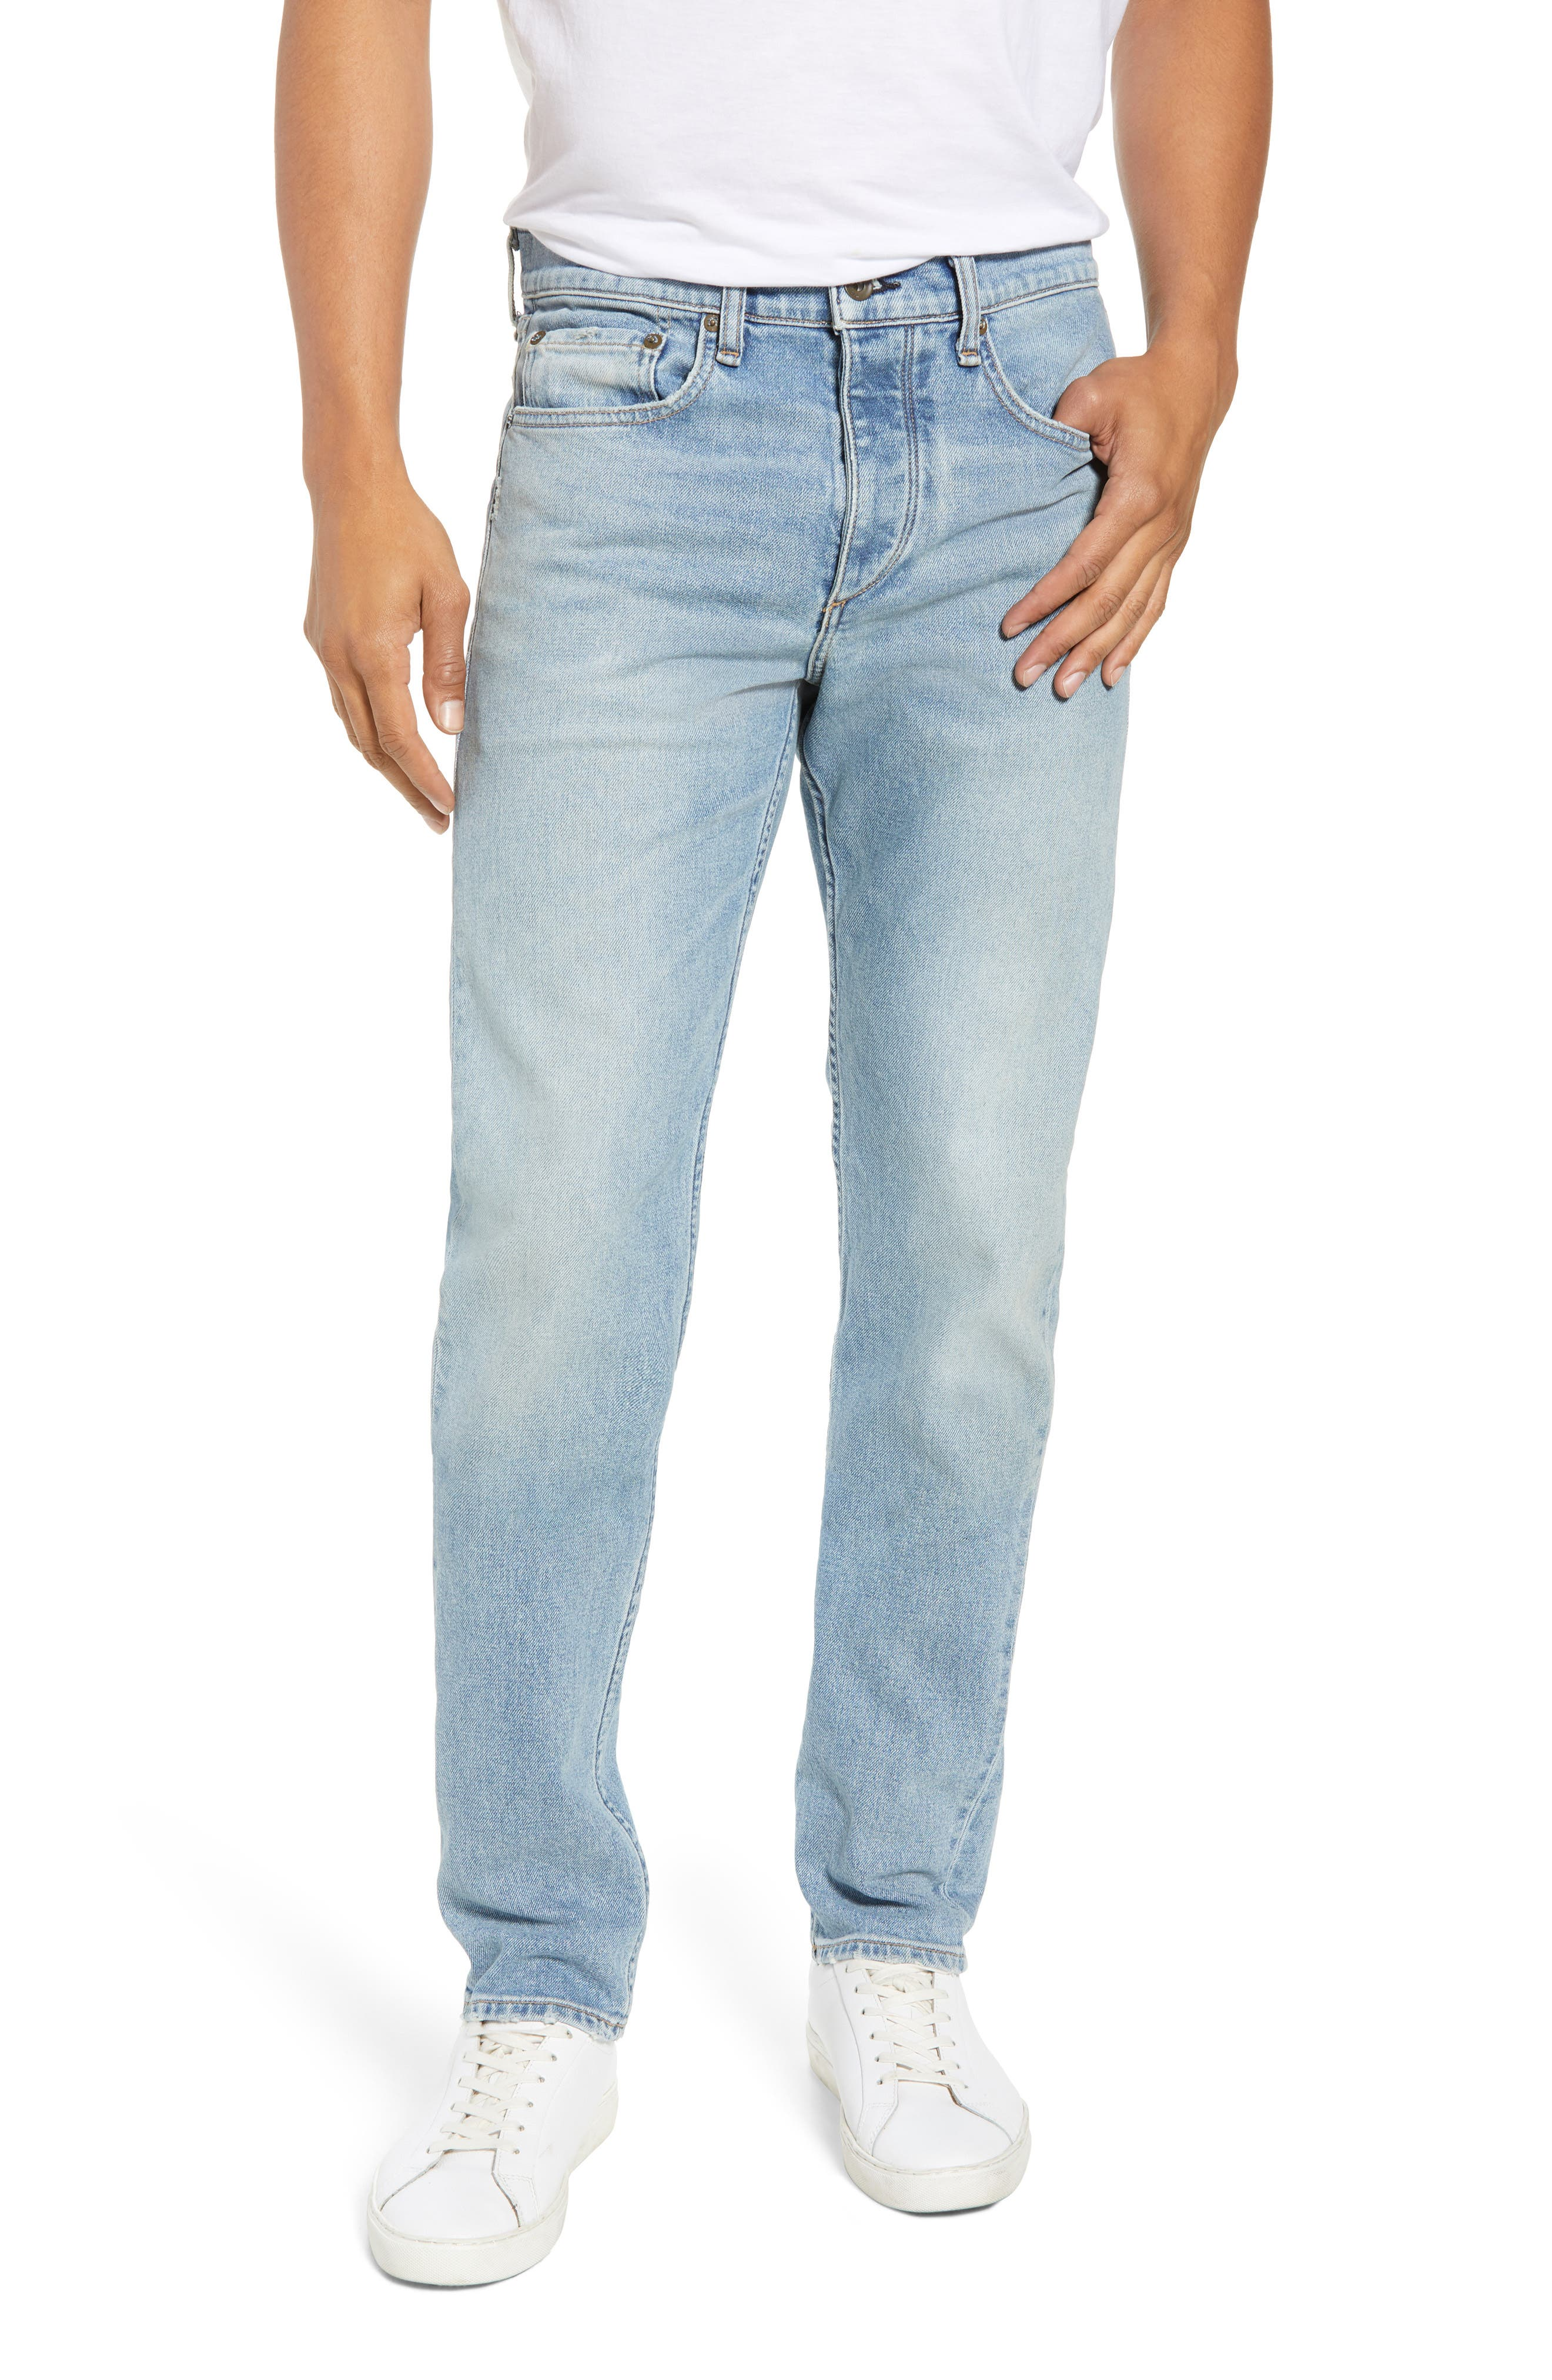 Fit 2 Slim Fit Jeans,                         Main,                         color, Somerset